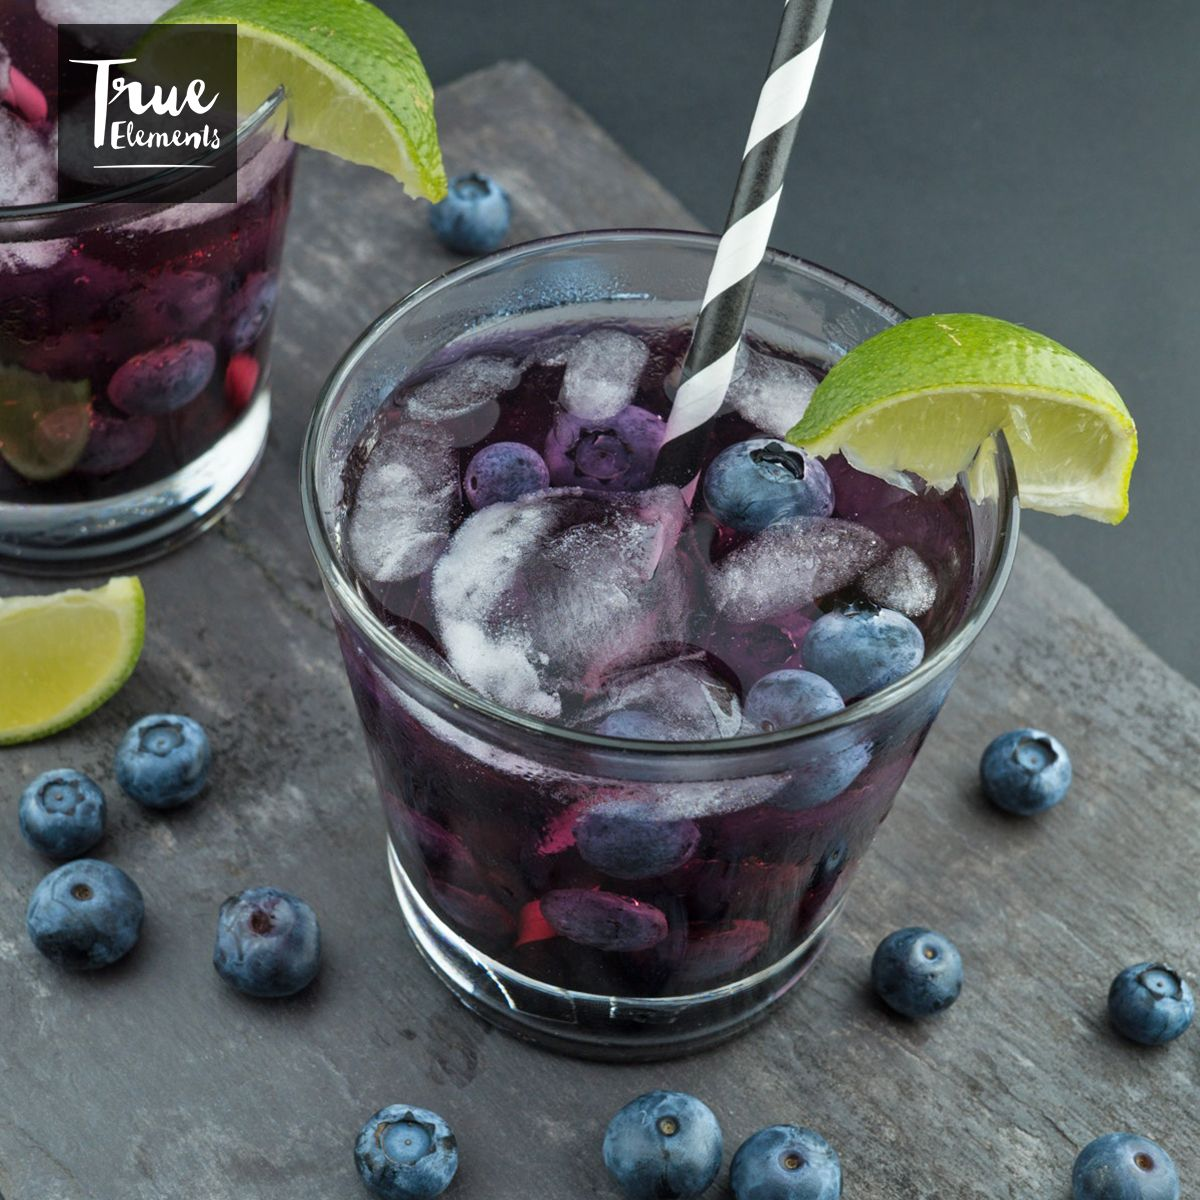 Blueberries are a proud member of Superfood family, so it